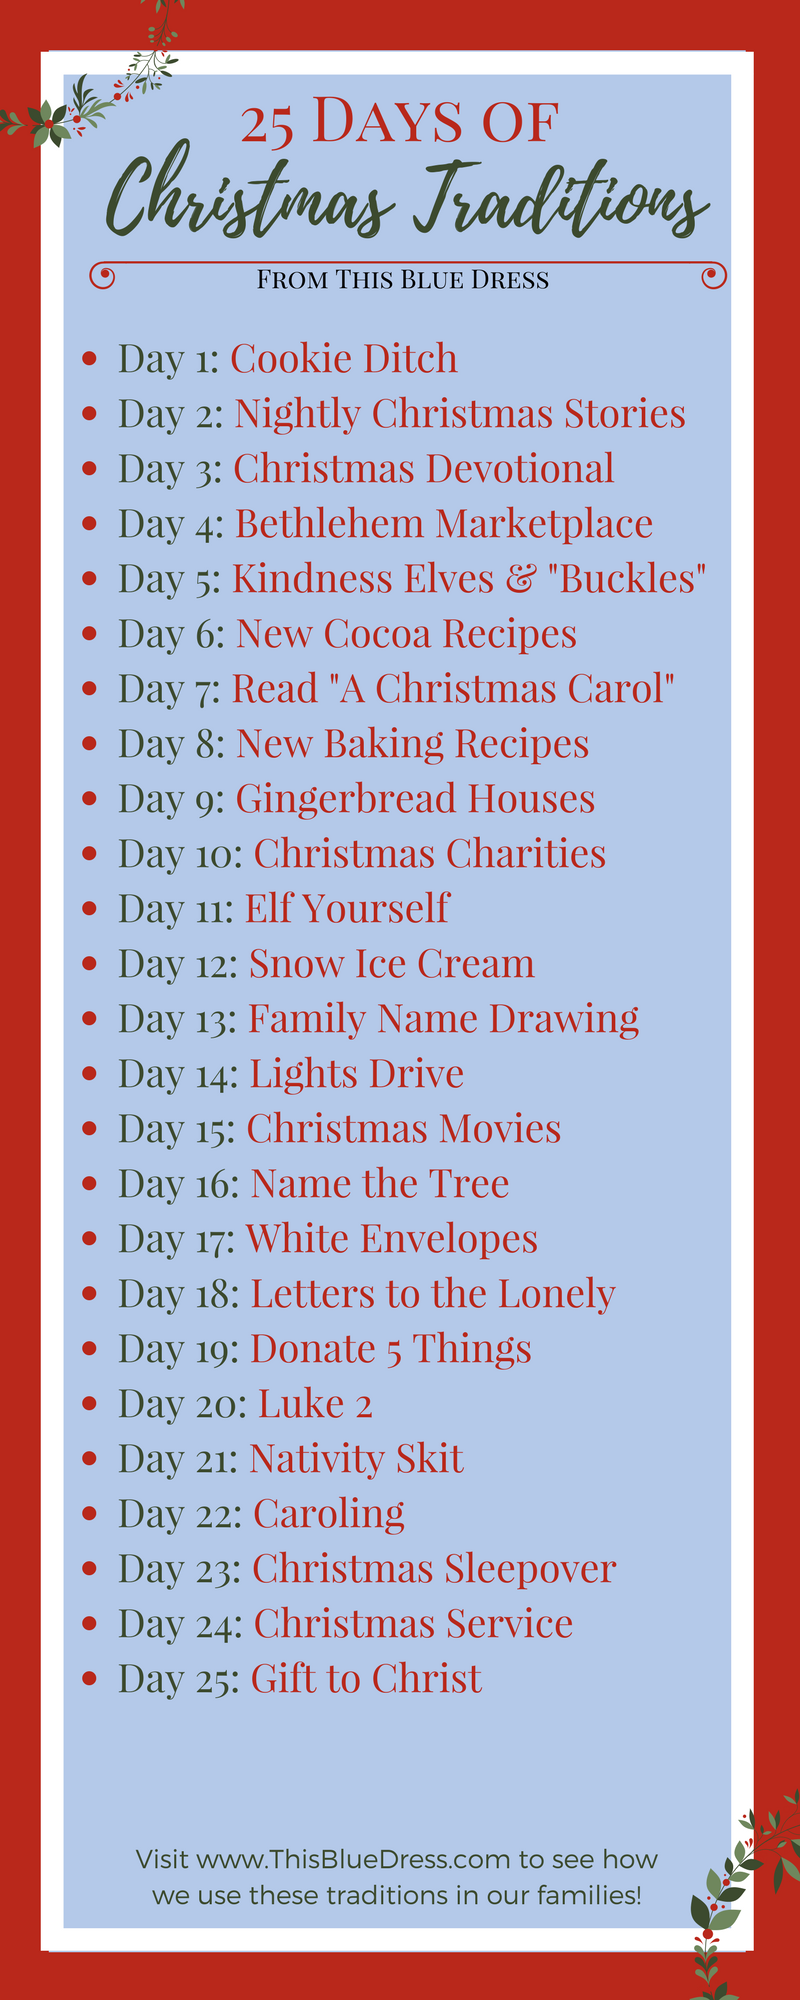 25 Days of Christmas Traditions List